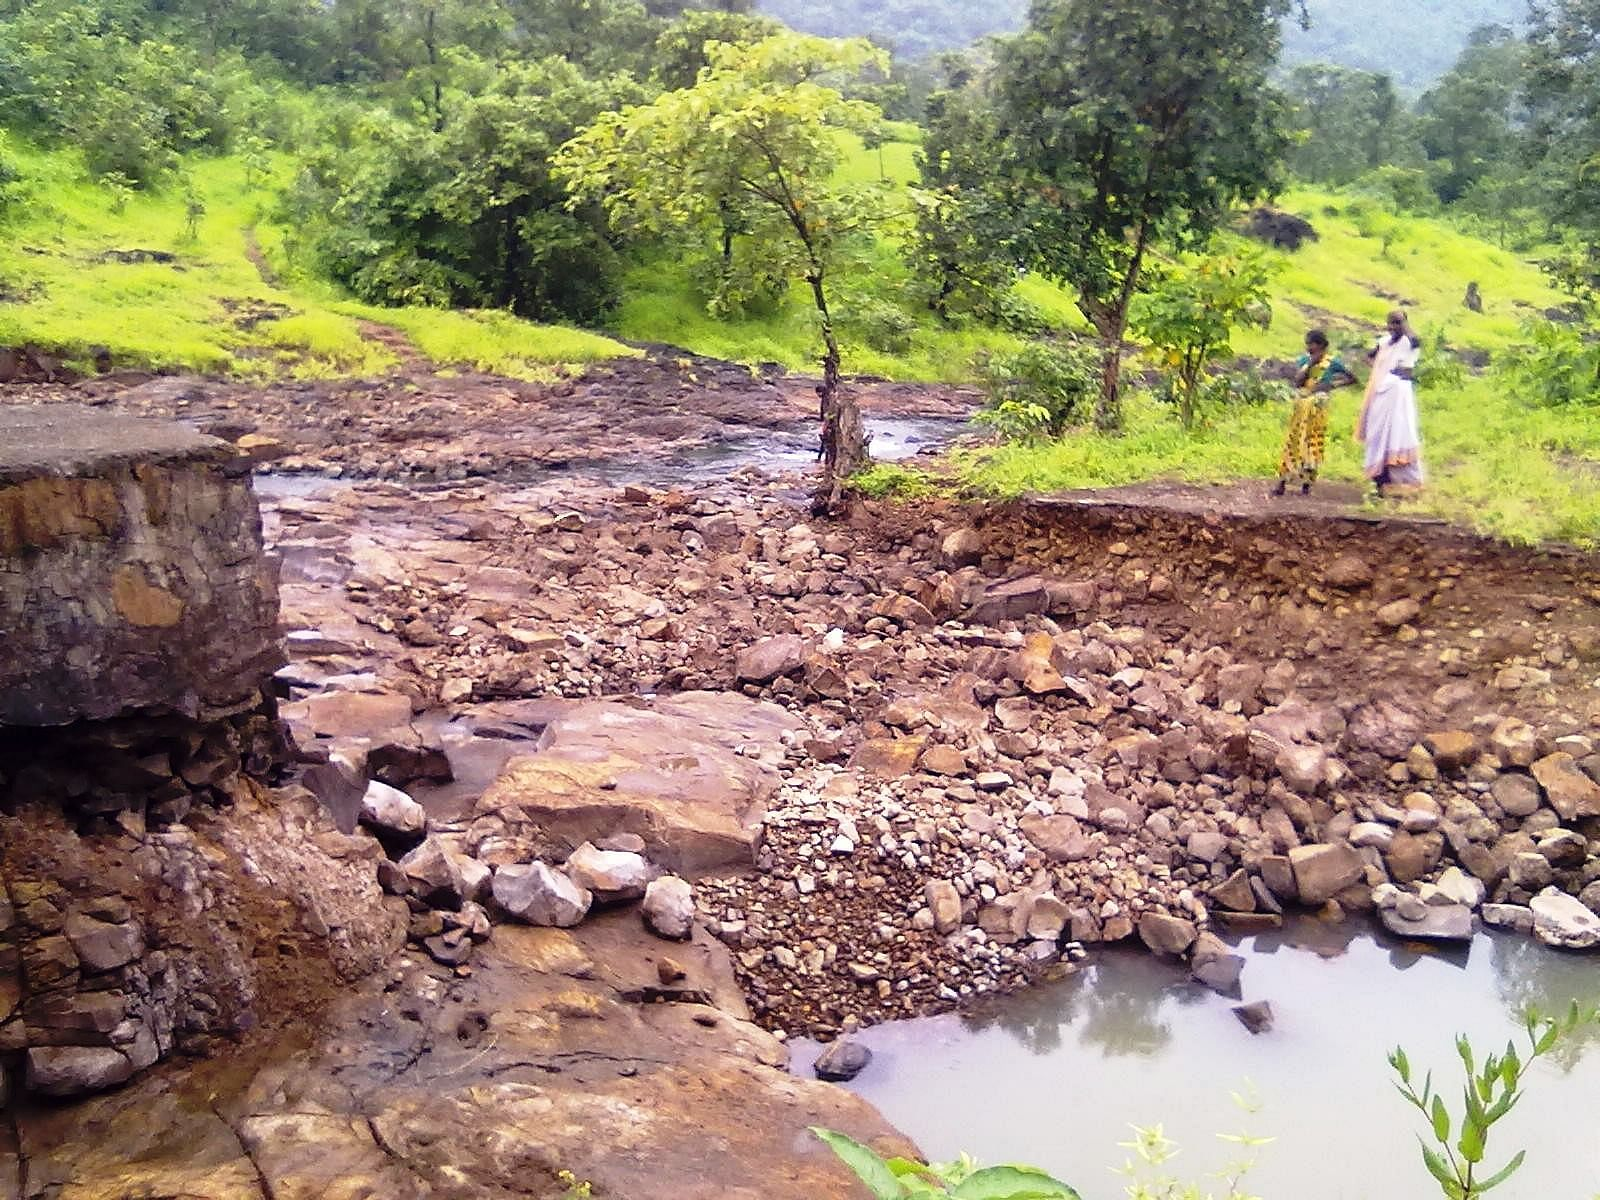 This is the broken pathway that the women of Pada Shendyachi Meth have to cross to access a small well that meets their water needs.